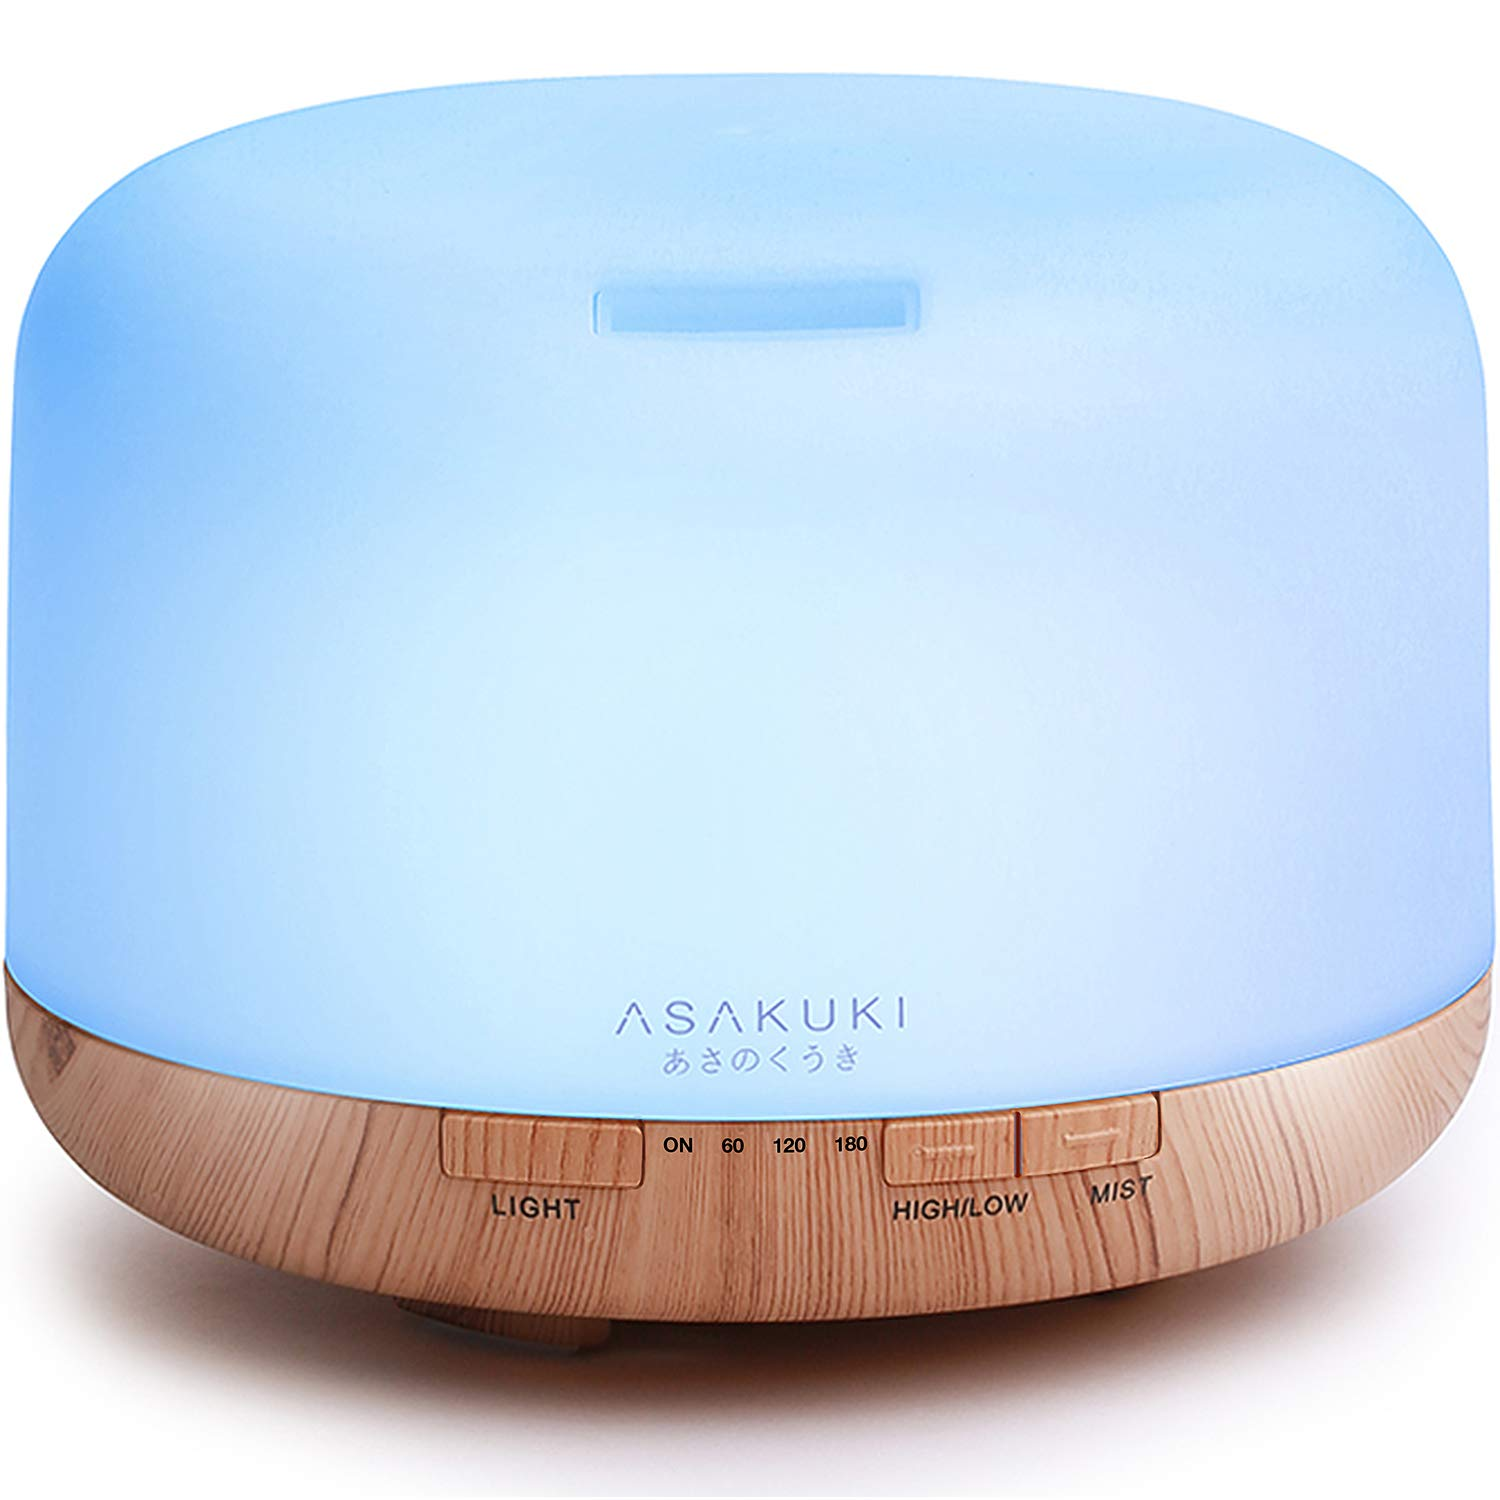 ASAKUKI 500ml Premium, Essential Oil Diffuser, 5 In 1 Ultrasonic Aromatherapy Fragrant Oil Humidifier Vaporizer, Timer and Auto-Off Safety Switch, 7 LED Light Colors by ASAKUKI